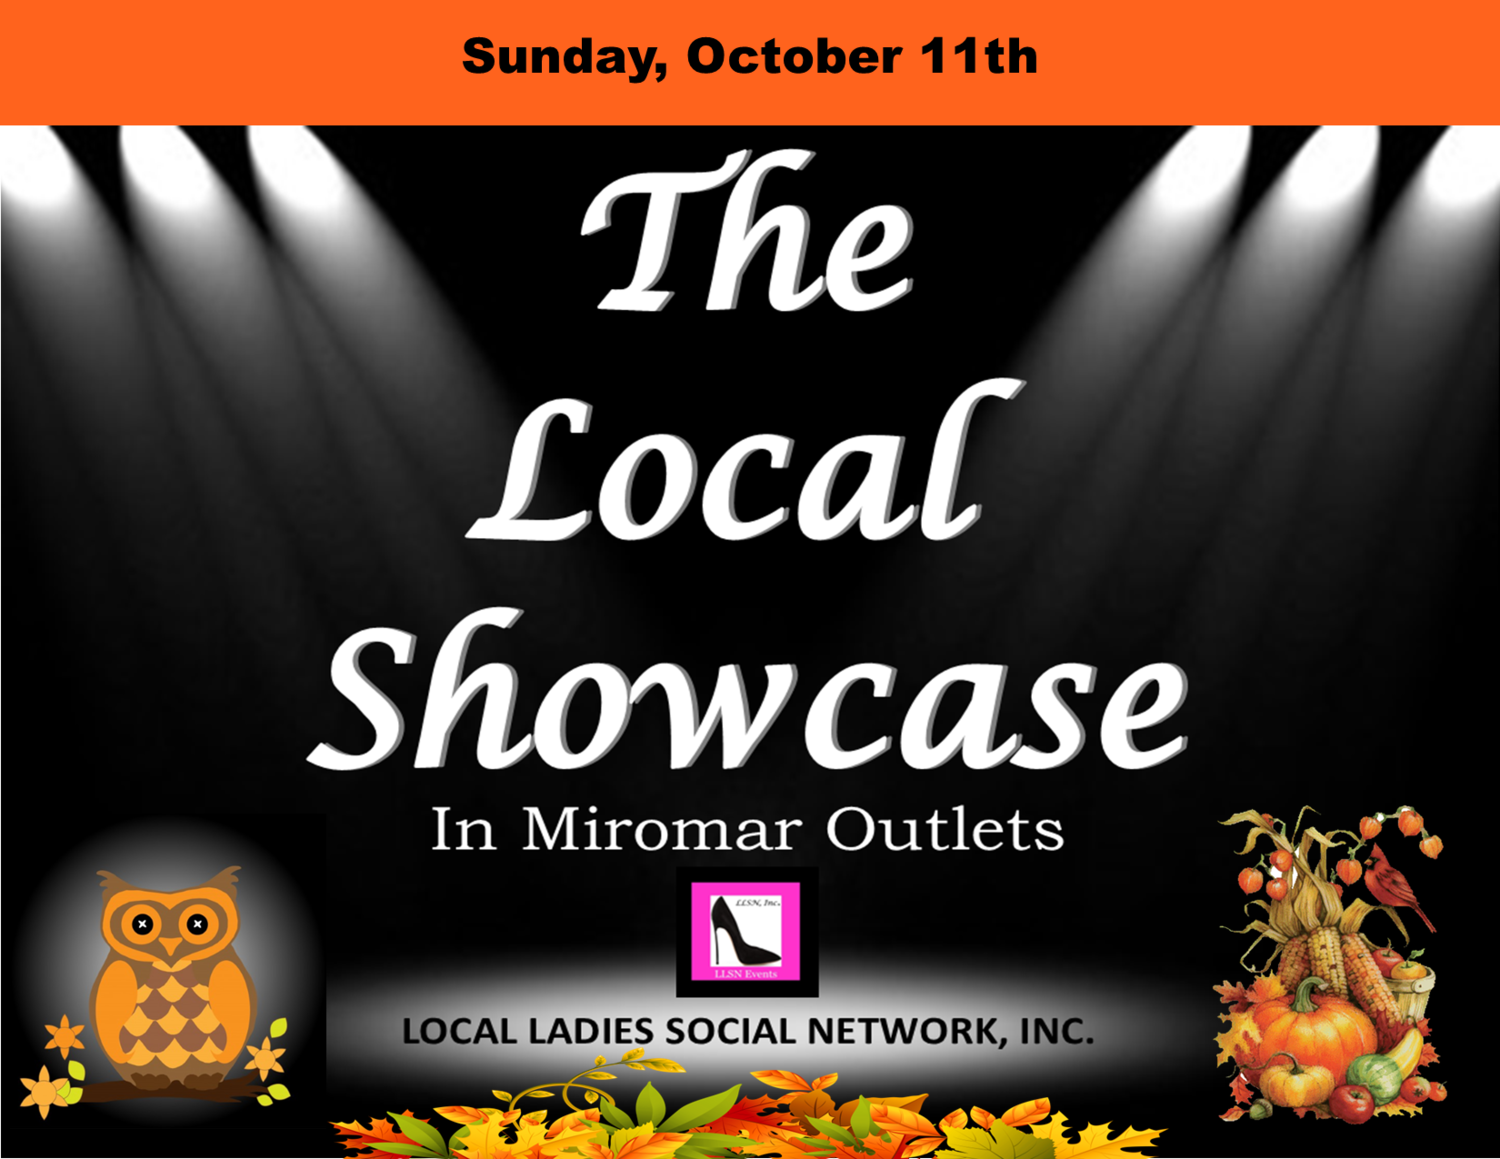 Sunday, October 11th, 12pm-6pm.